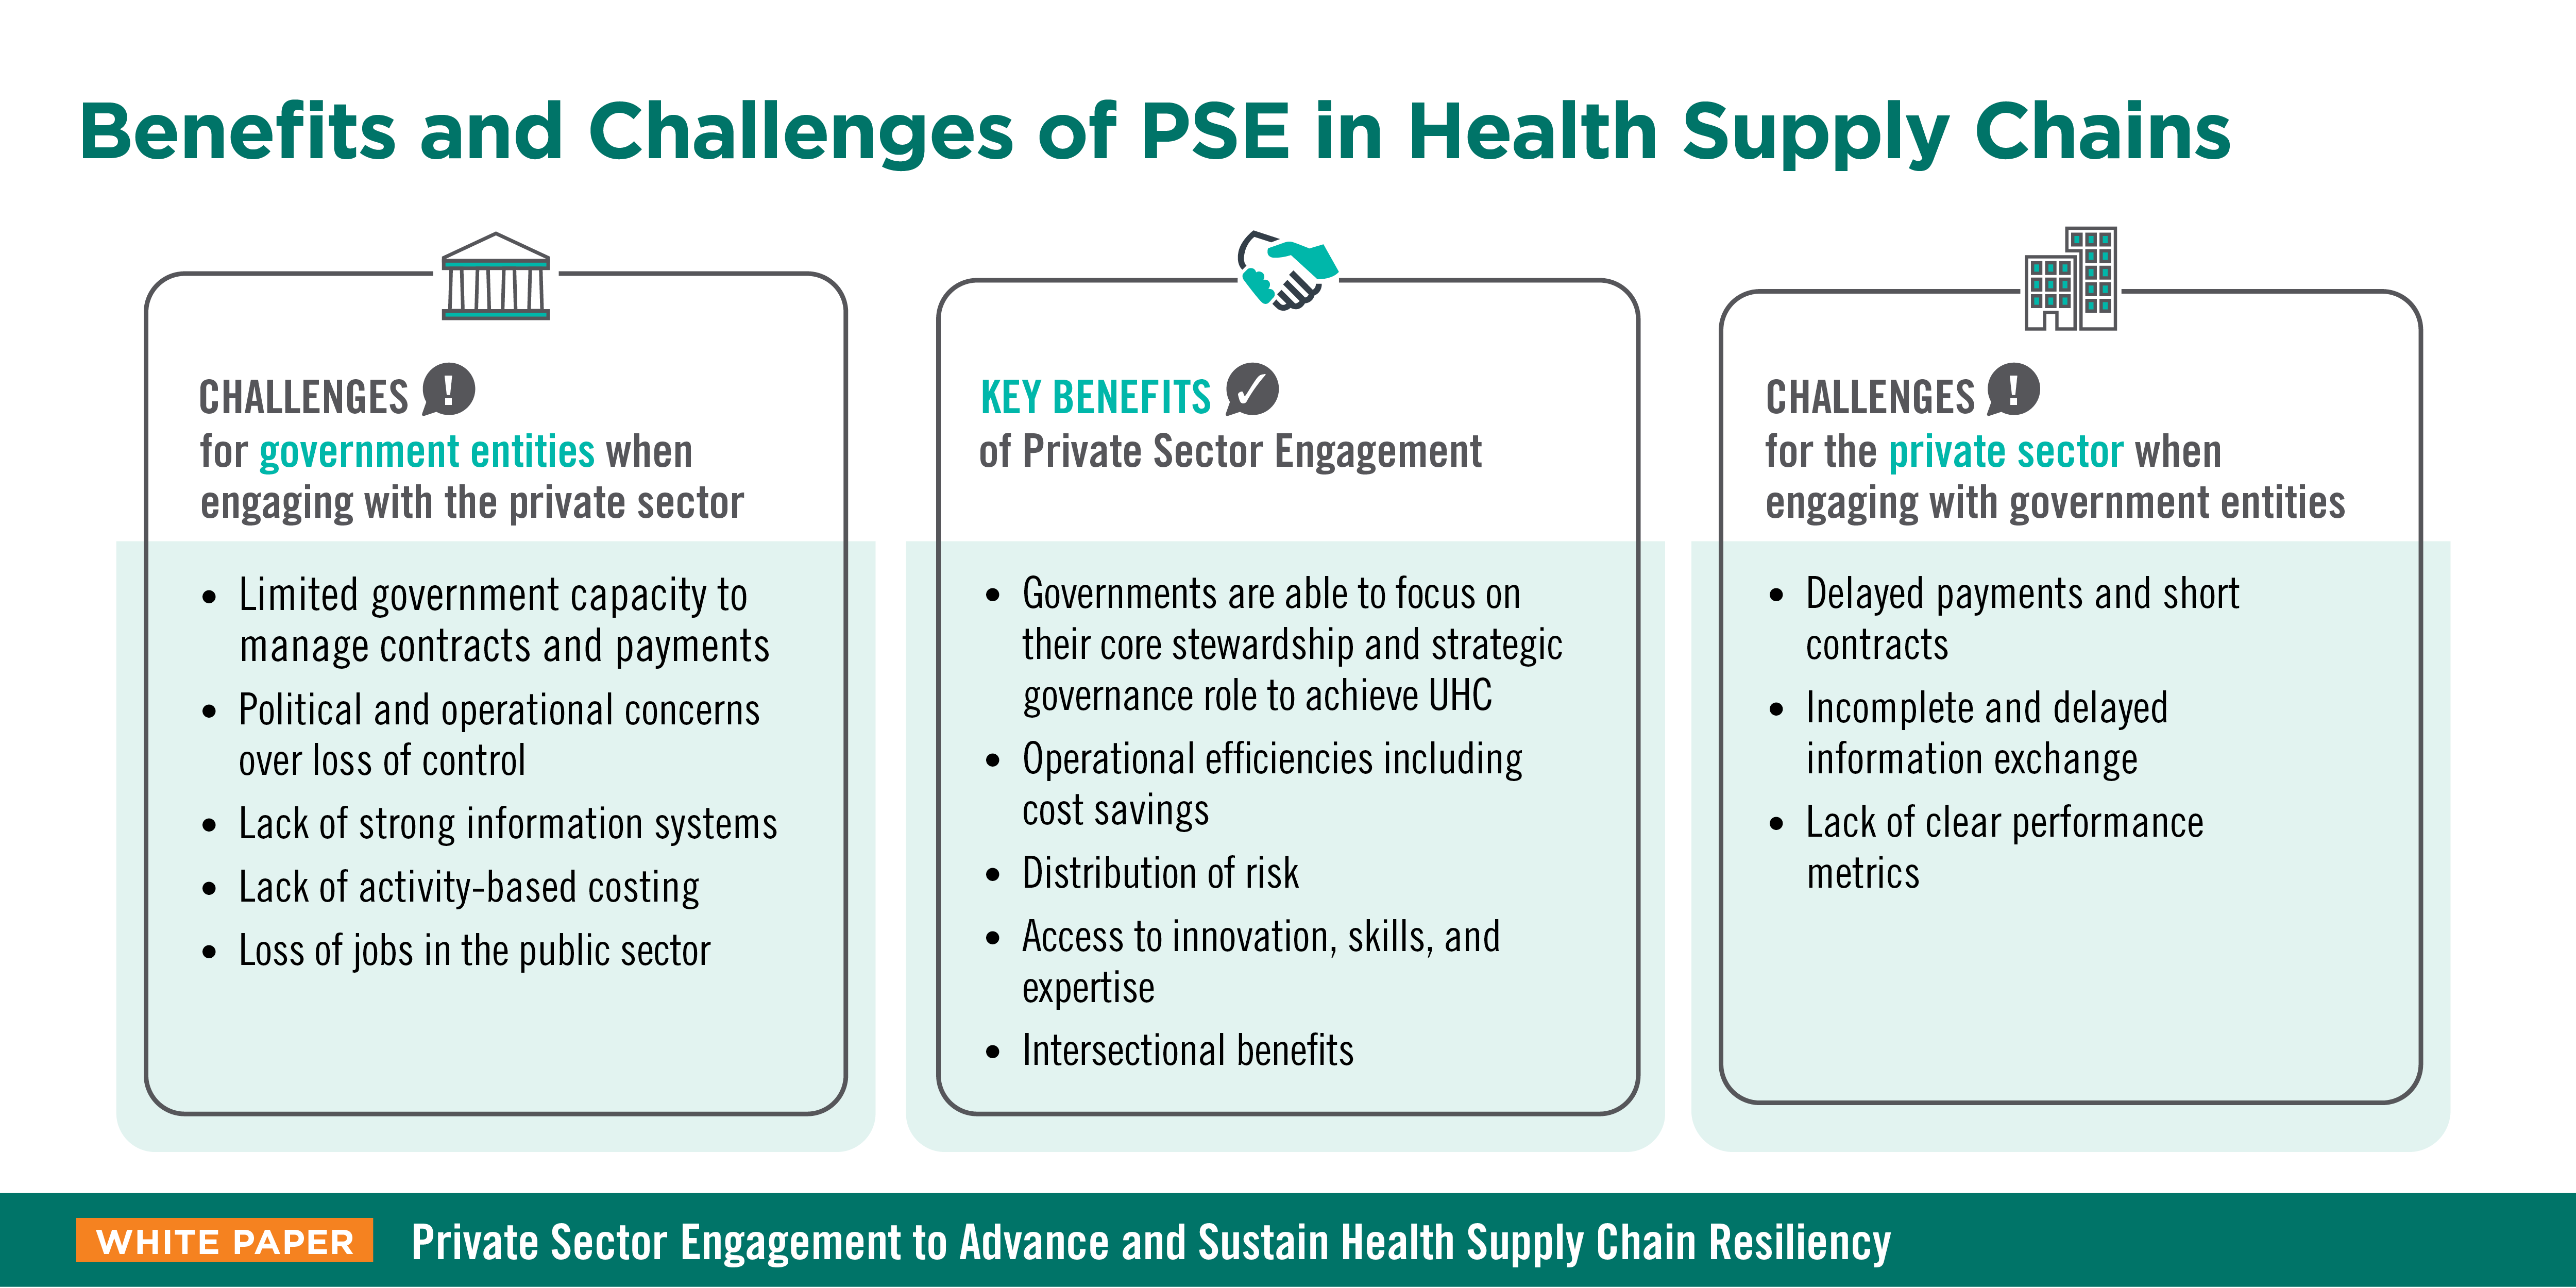 Diagram showing benefits and challenges of PSE.